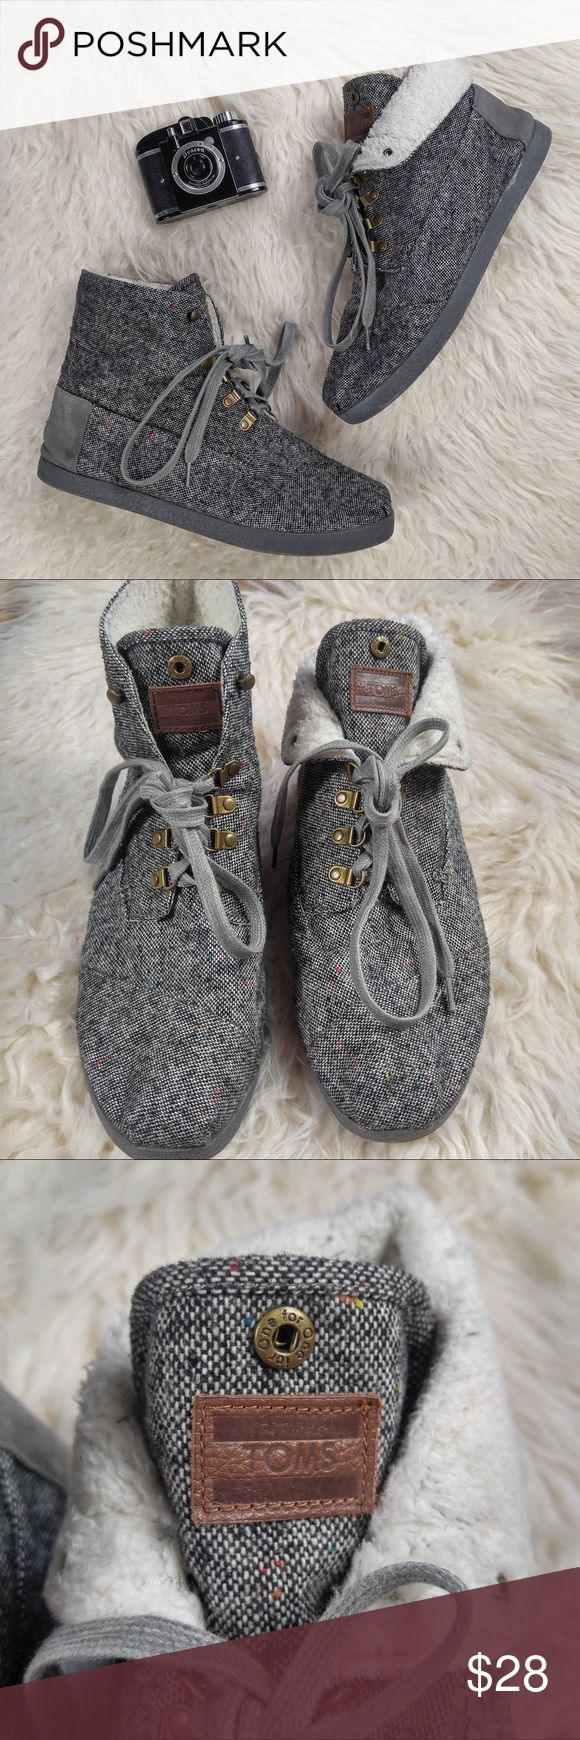 Men's Toms high top lined shoes Good condition, gently used, minimal wear as pictured, lined, tweed look, color- gray, white. ⭐️ no trading or modeling ⭐️ TOMS Shoes Sneakers